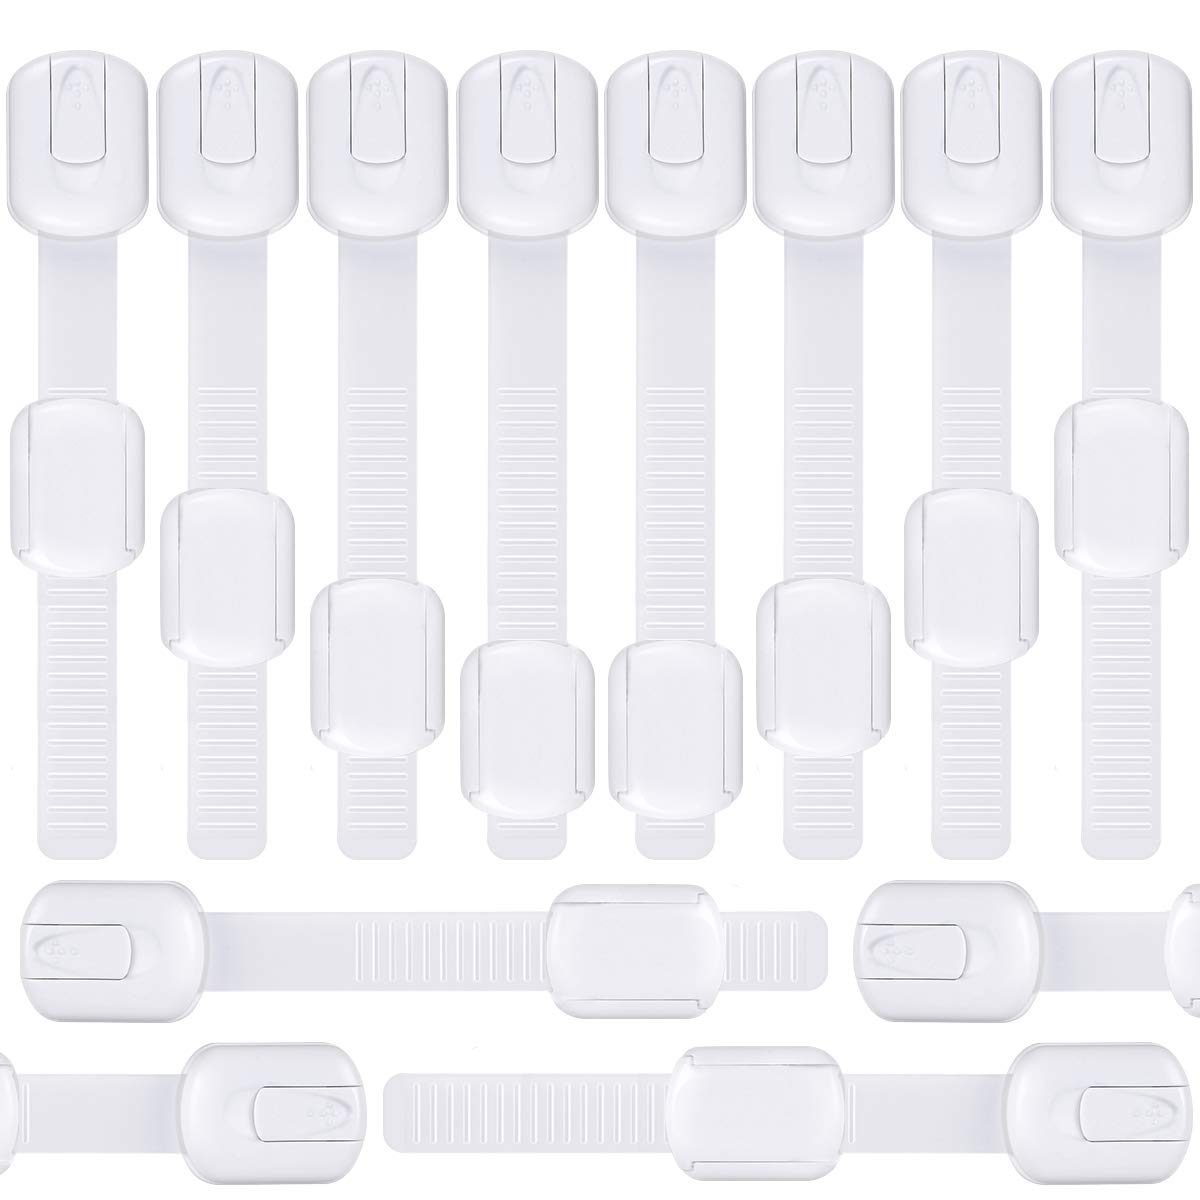 12 Pack Child Safety Strap Locks, Adjustable Safety Latches for Baby, Adhesive Baby Locks for Cabinets, Drawers, Fridge, Toilet